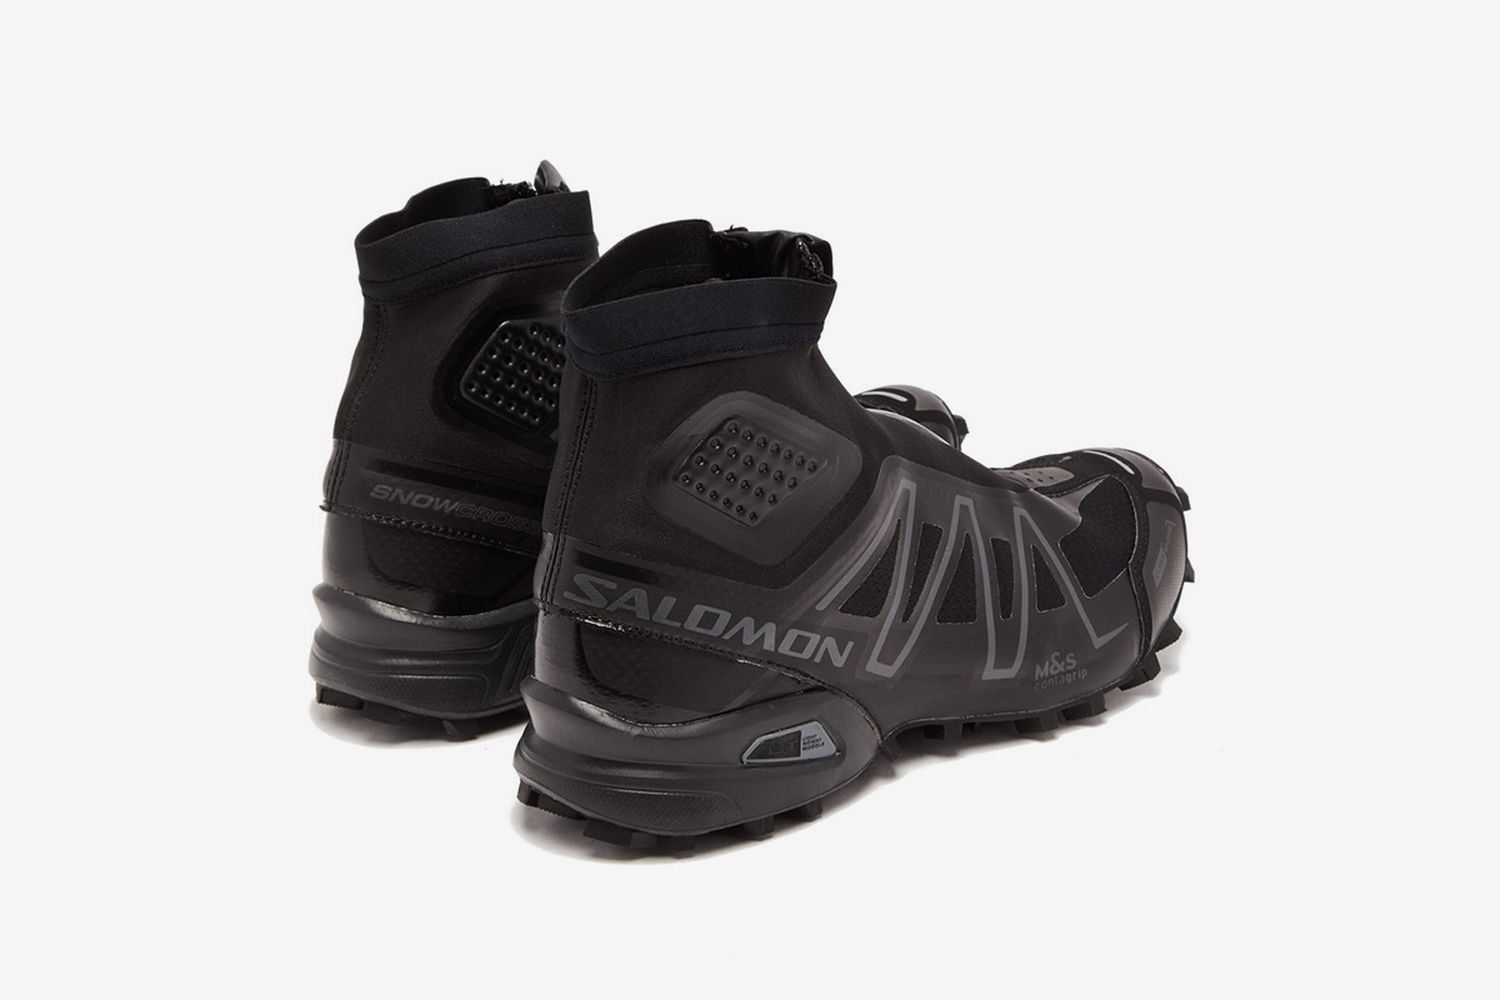 Snowcross Adv Ltd Waterproof Boots